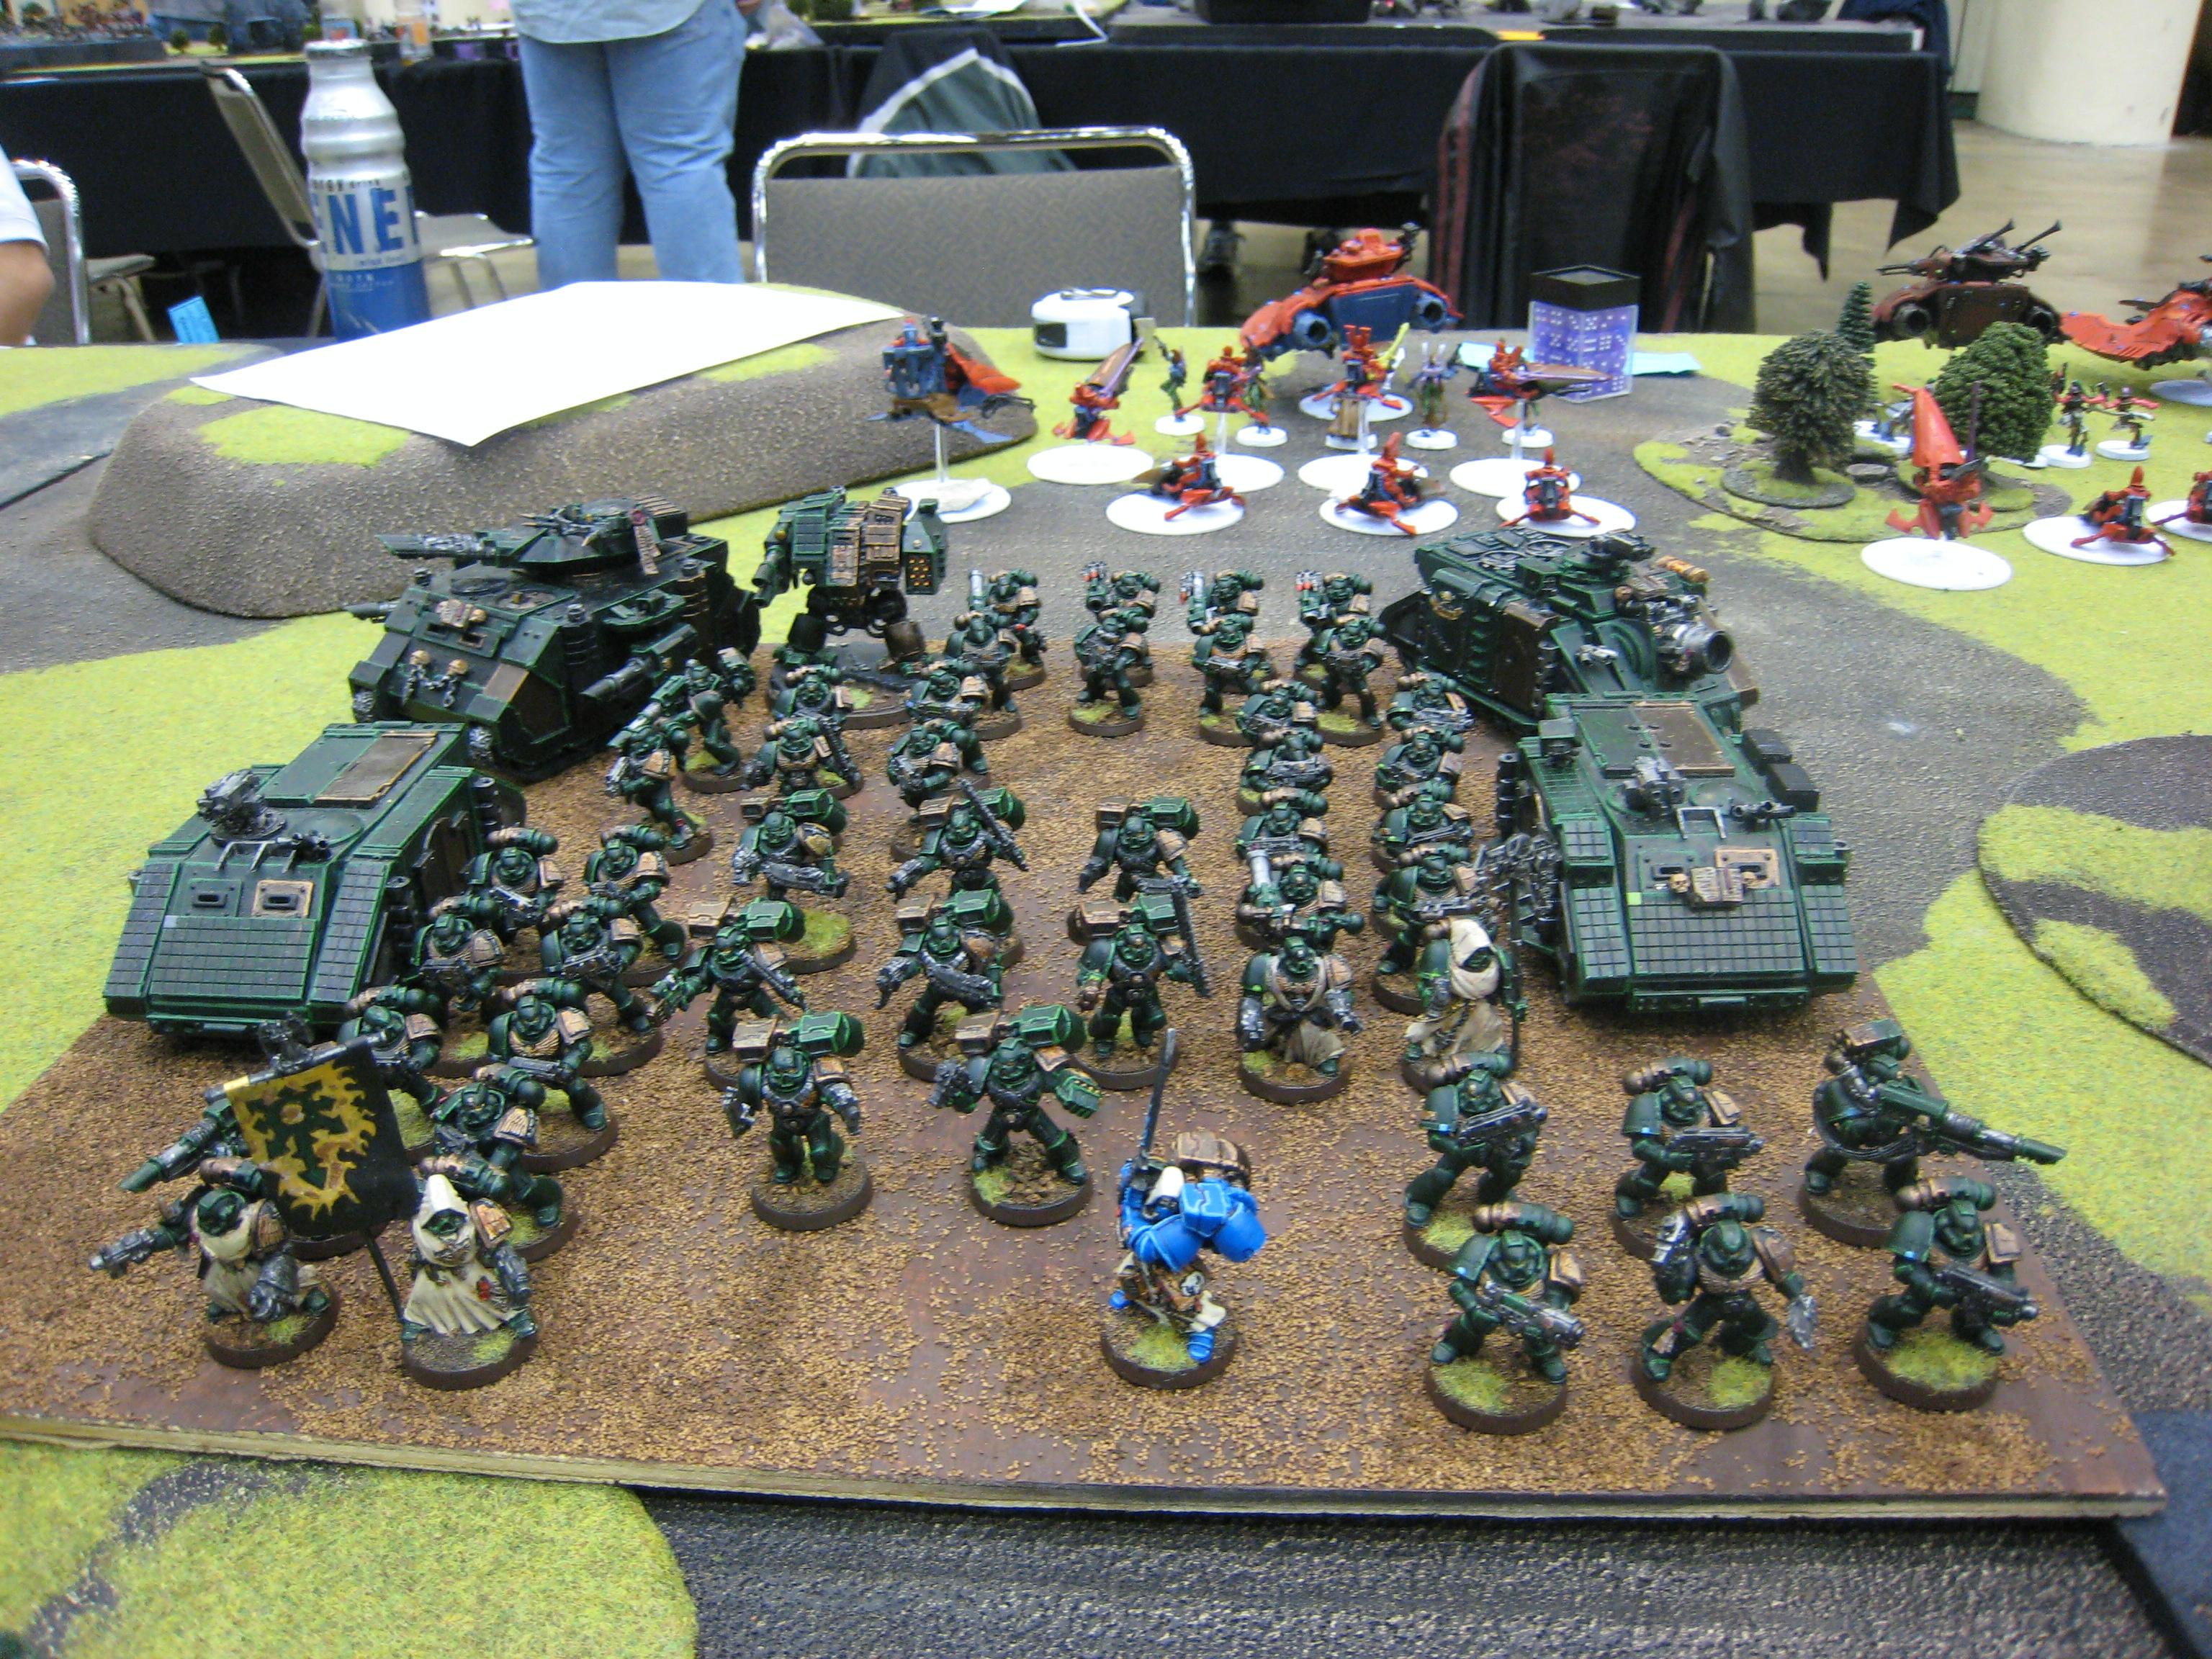 Army, Fallen Angel, Grand Tournament, Icon Bearer, Librarian, Space Marines, Warhammer 40,000